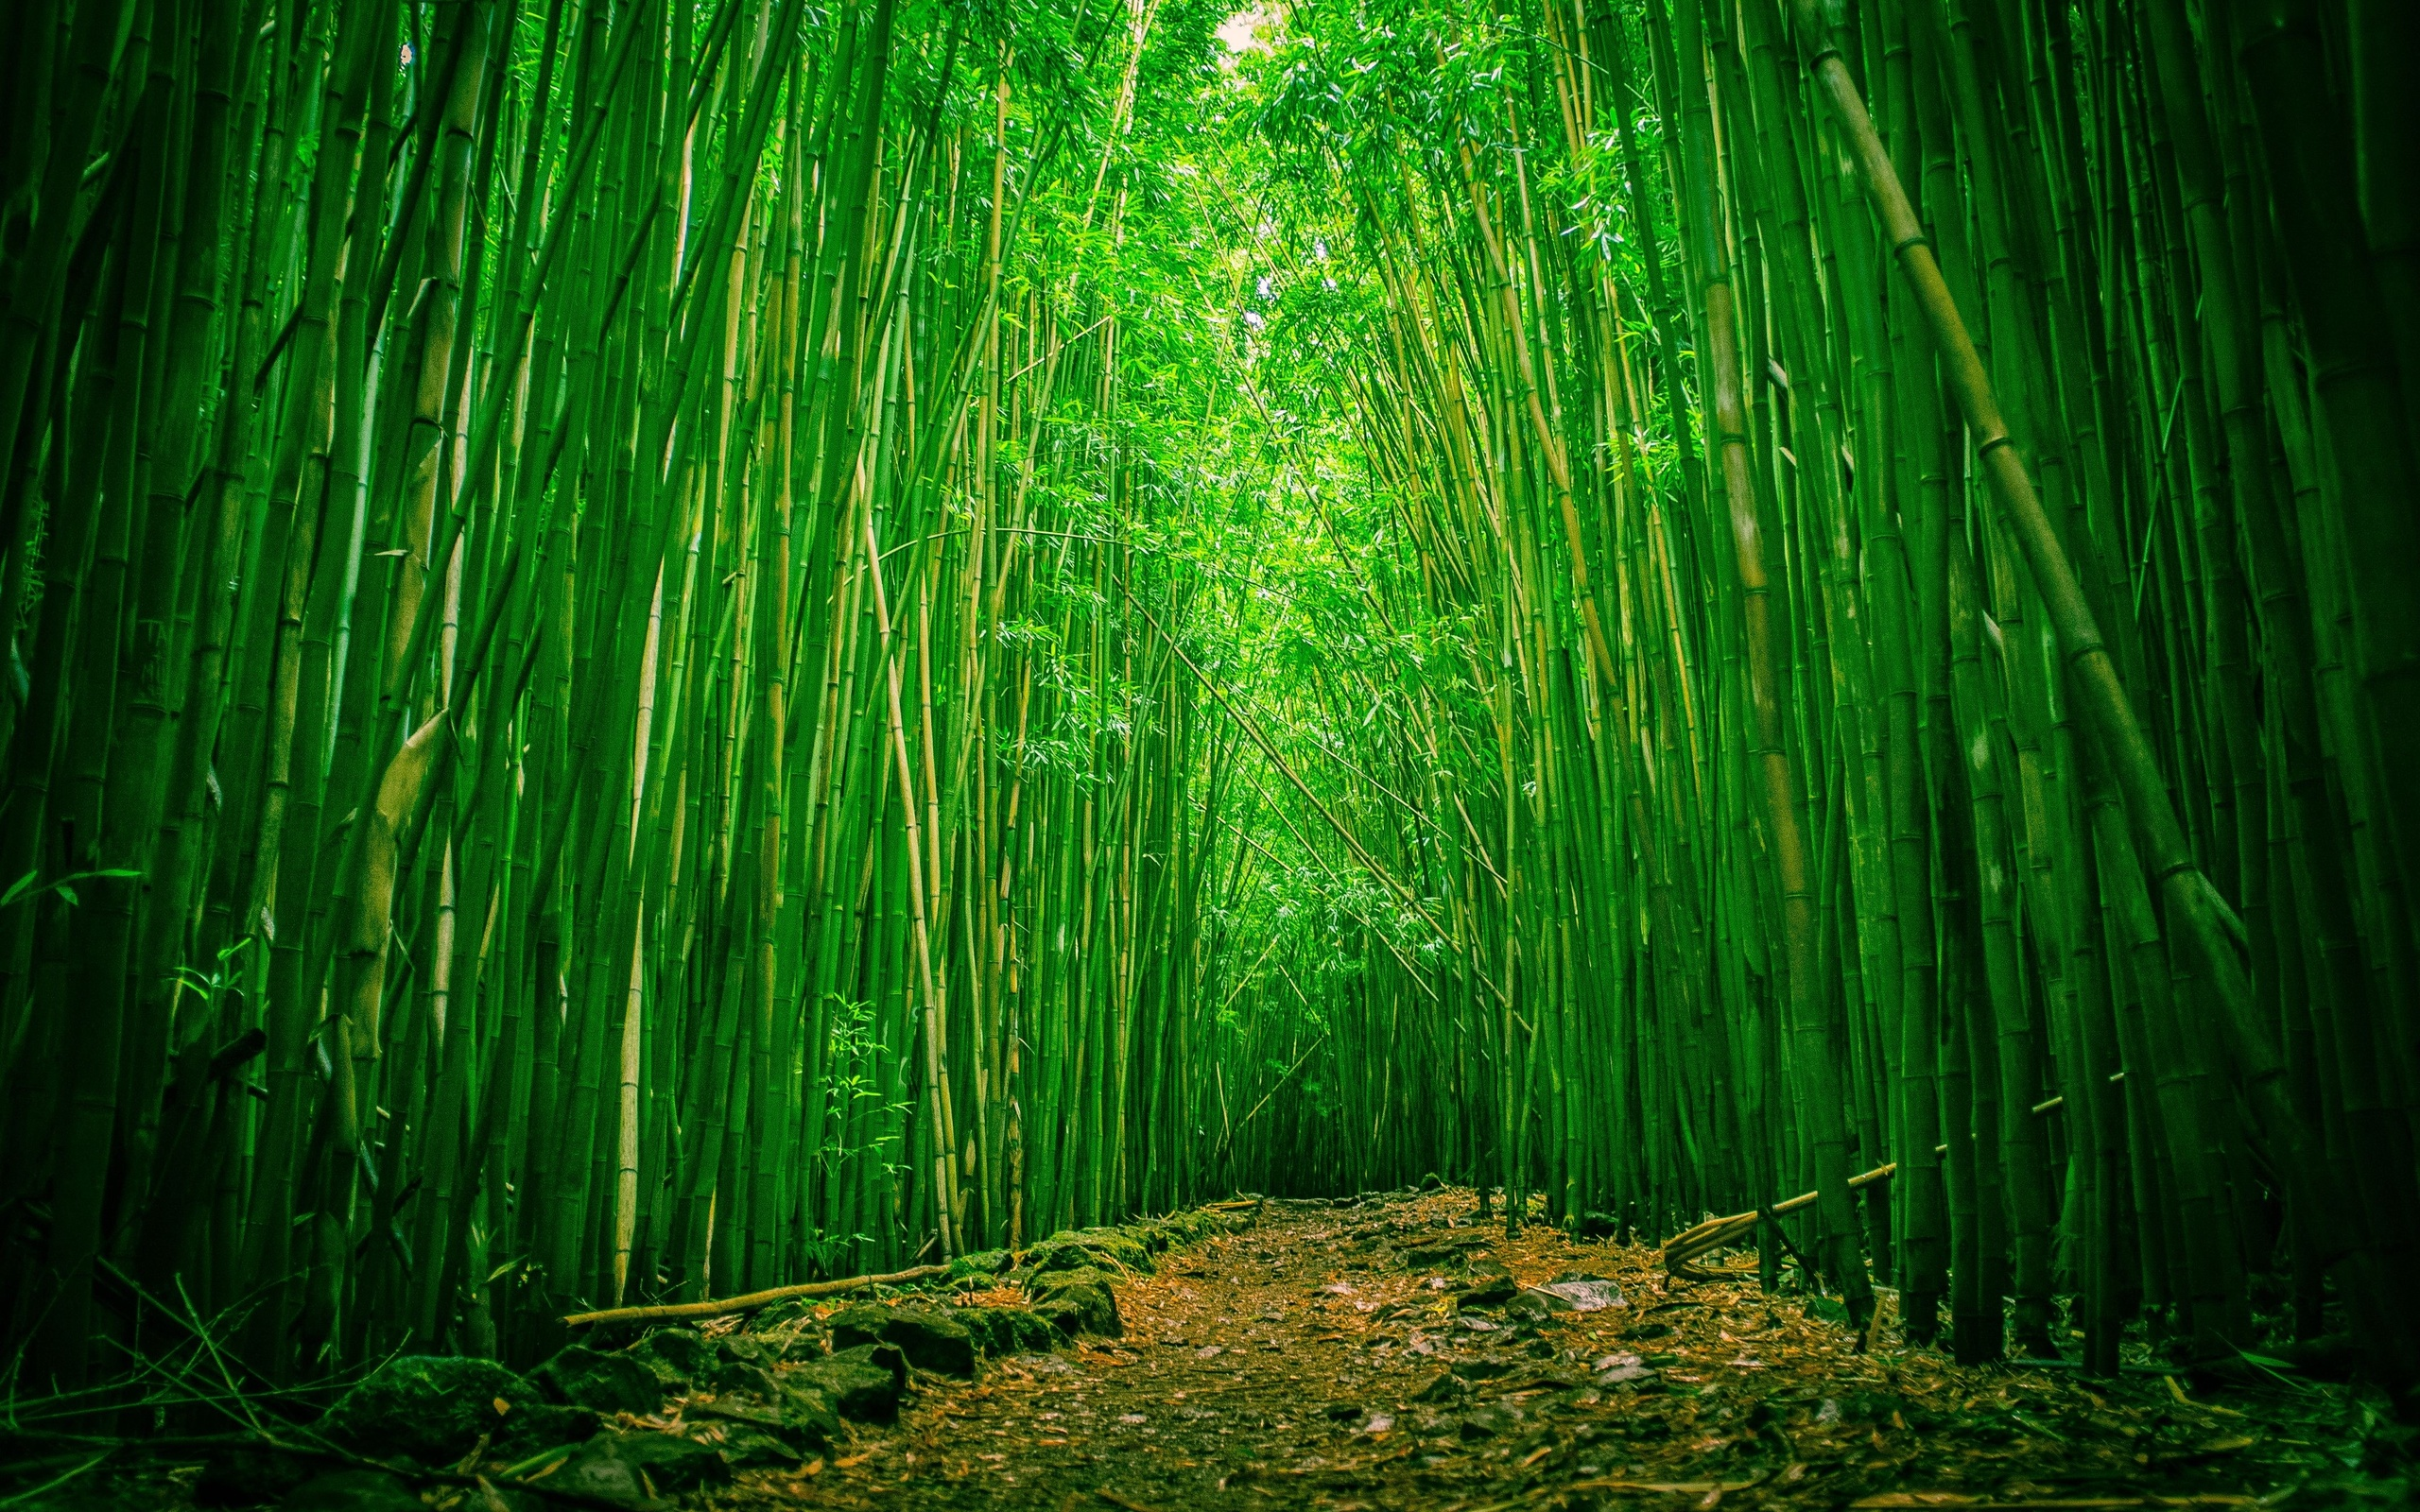 Bamboo-Forest-Wallpaper-Photos